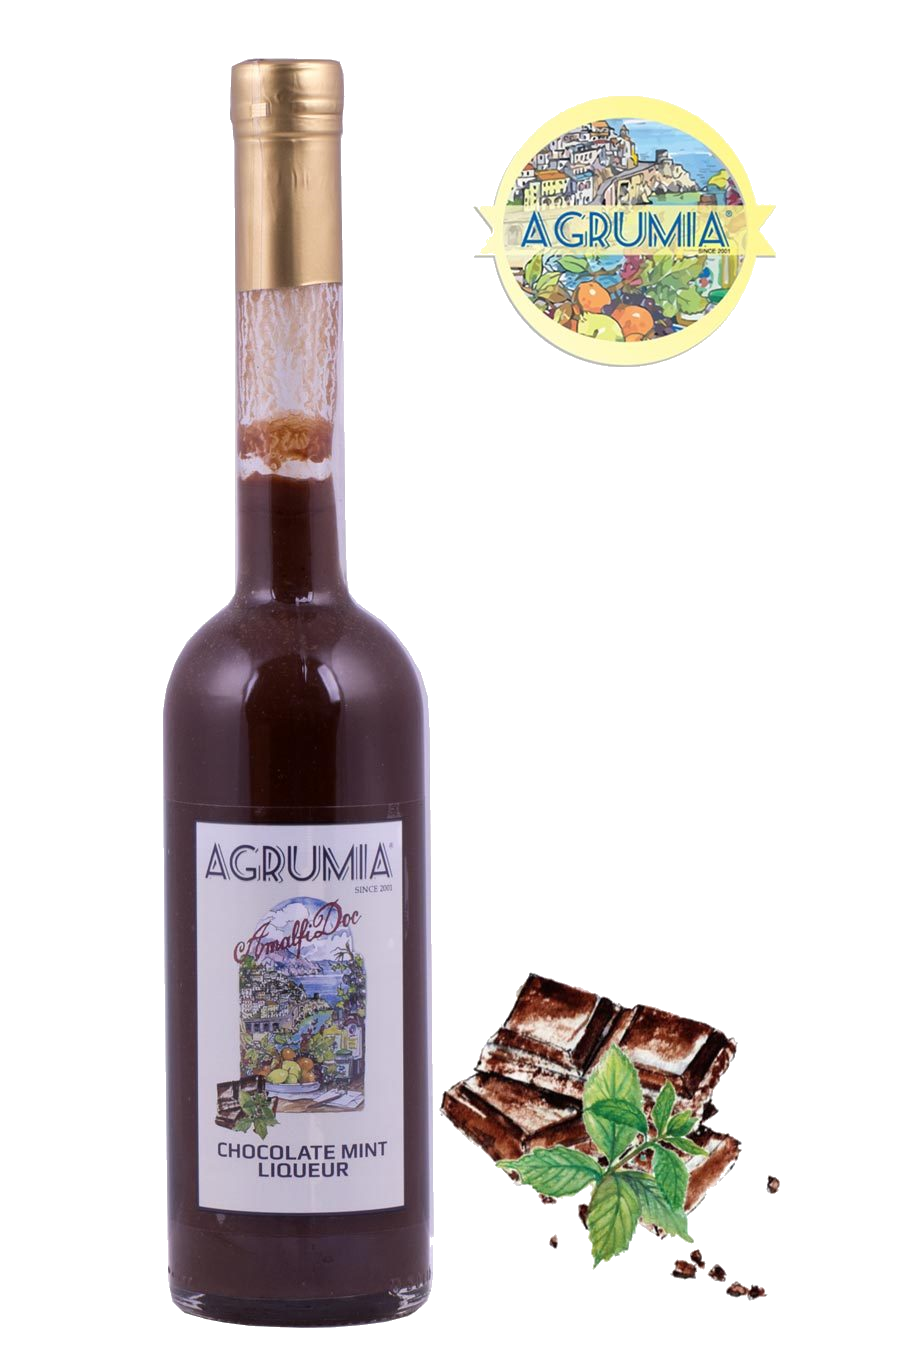 Agrumia liqueur bottle of chocolate mint cream flavour with representative chocolate and mint at its side